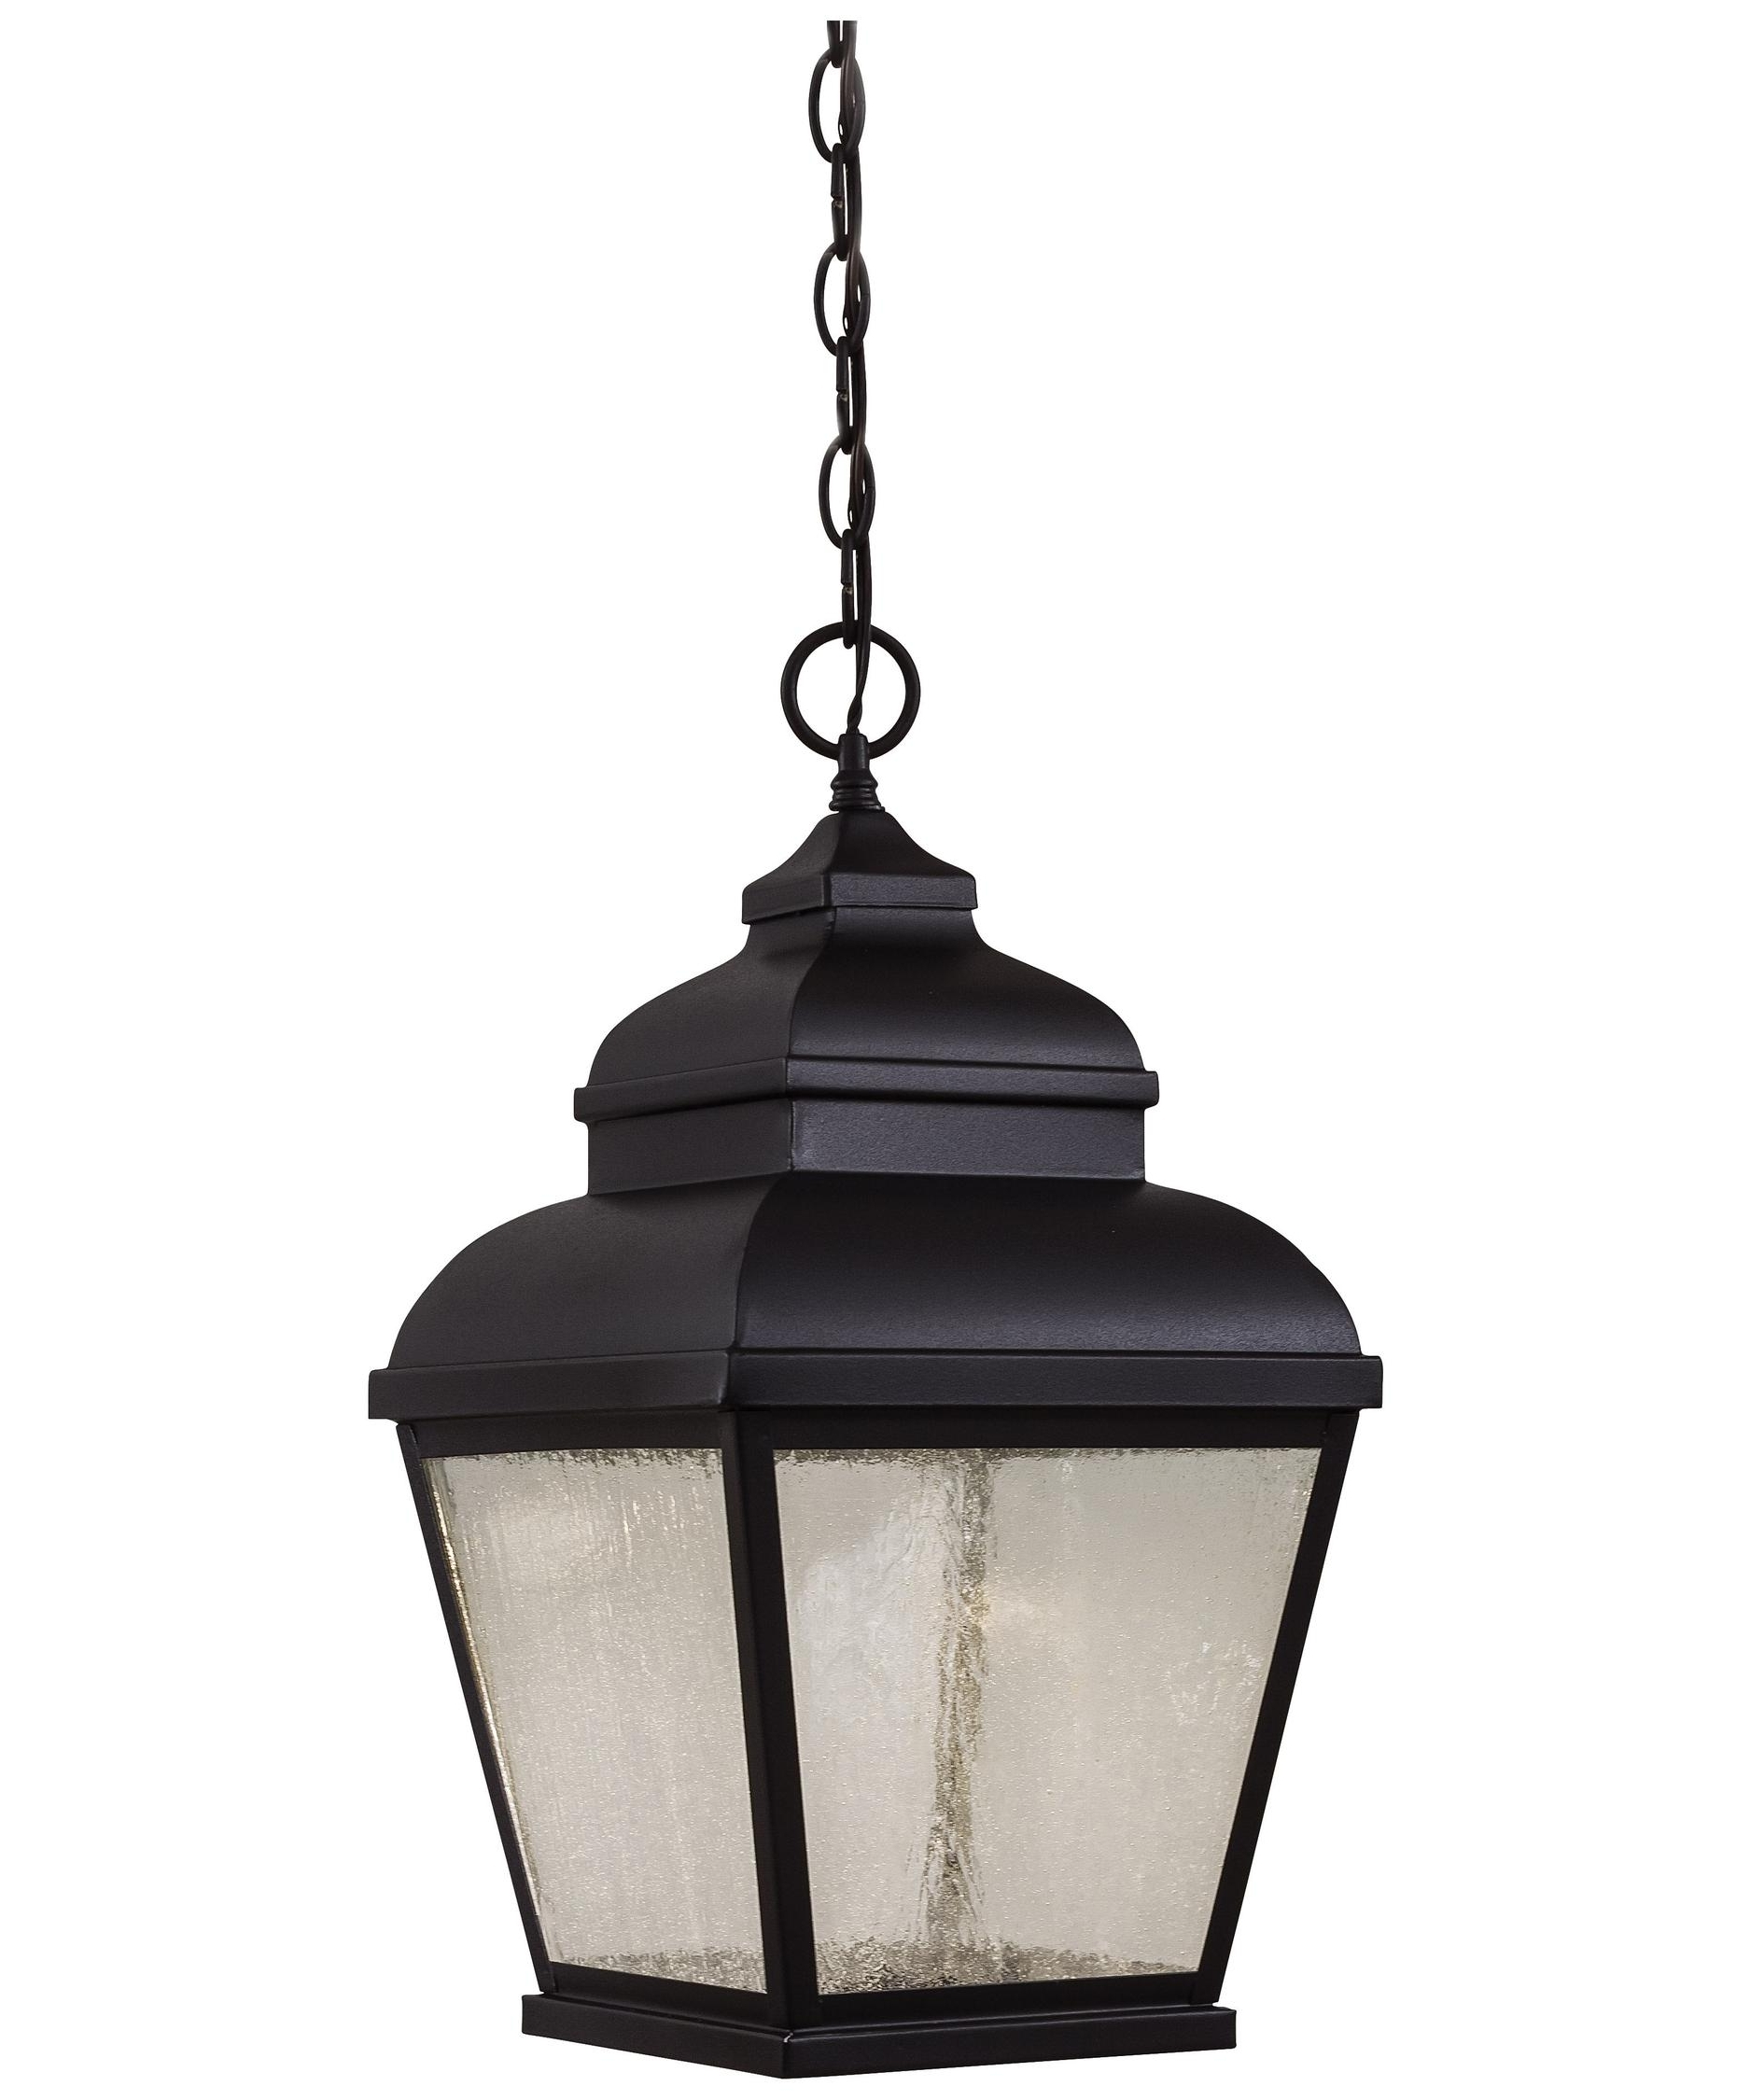 Favorite Large Outdoor Hanging Lights Intended For Minka Lavery 8264 Mossoro 10 Inch Wide 3 Light Outdoor Hanging (View 19 of 20)